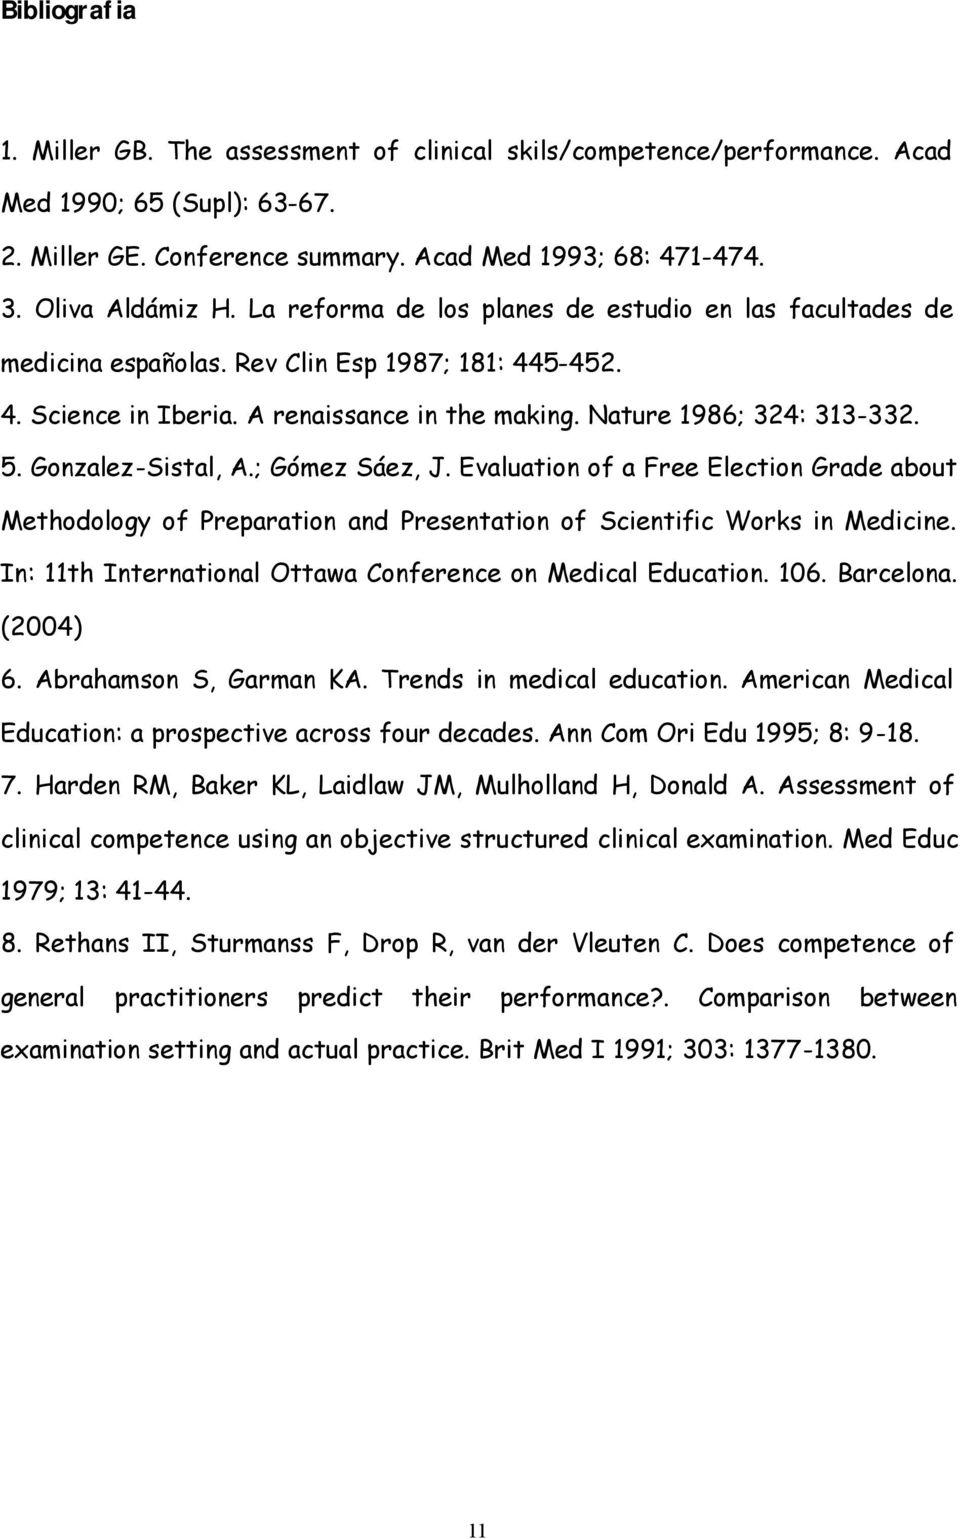 Gonzalez-Sistal, A.; Gómez Sáez, J. Evaluation of a Free Election Grade about Methodology of Preparation and Presentation of Scientific Works in Medicine.